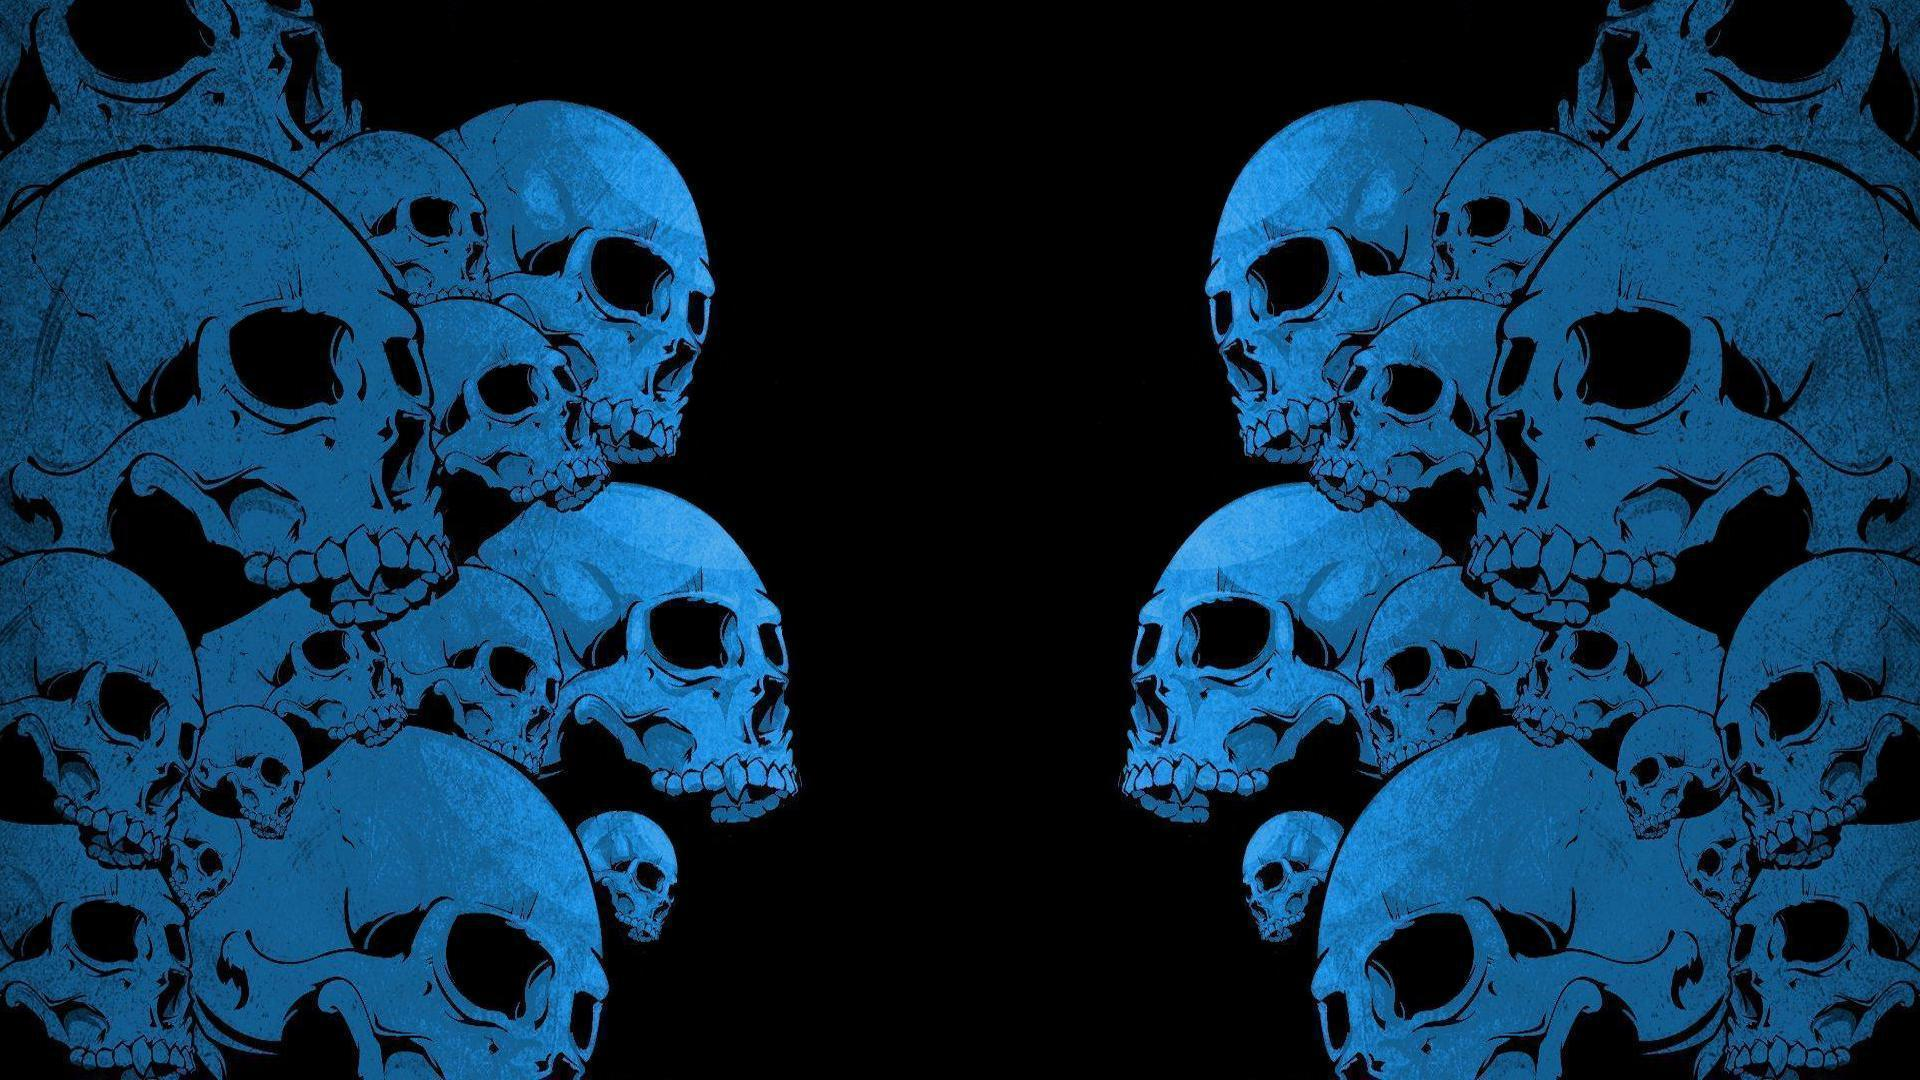 Hd Skull Wallpapers Wallpaper Cave HD Wallpapers Download Free Images Wallpaper [1000image.com]